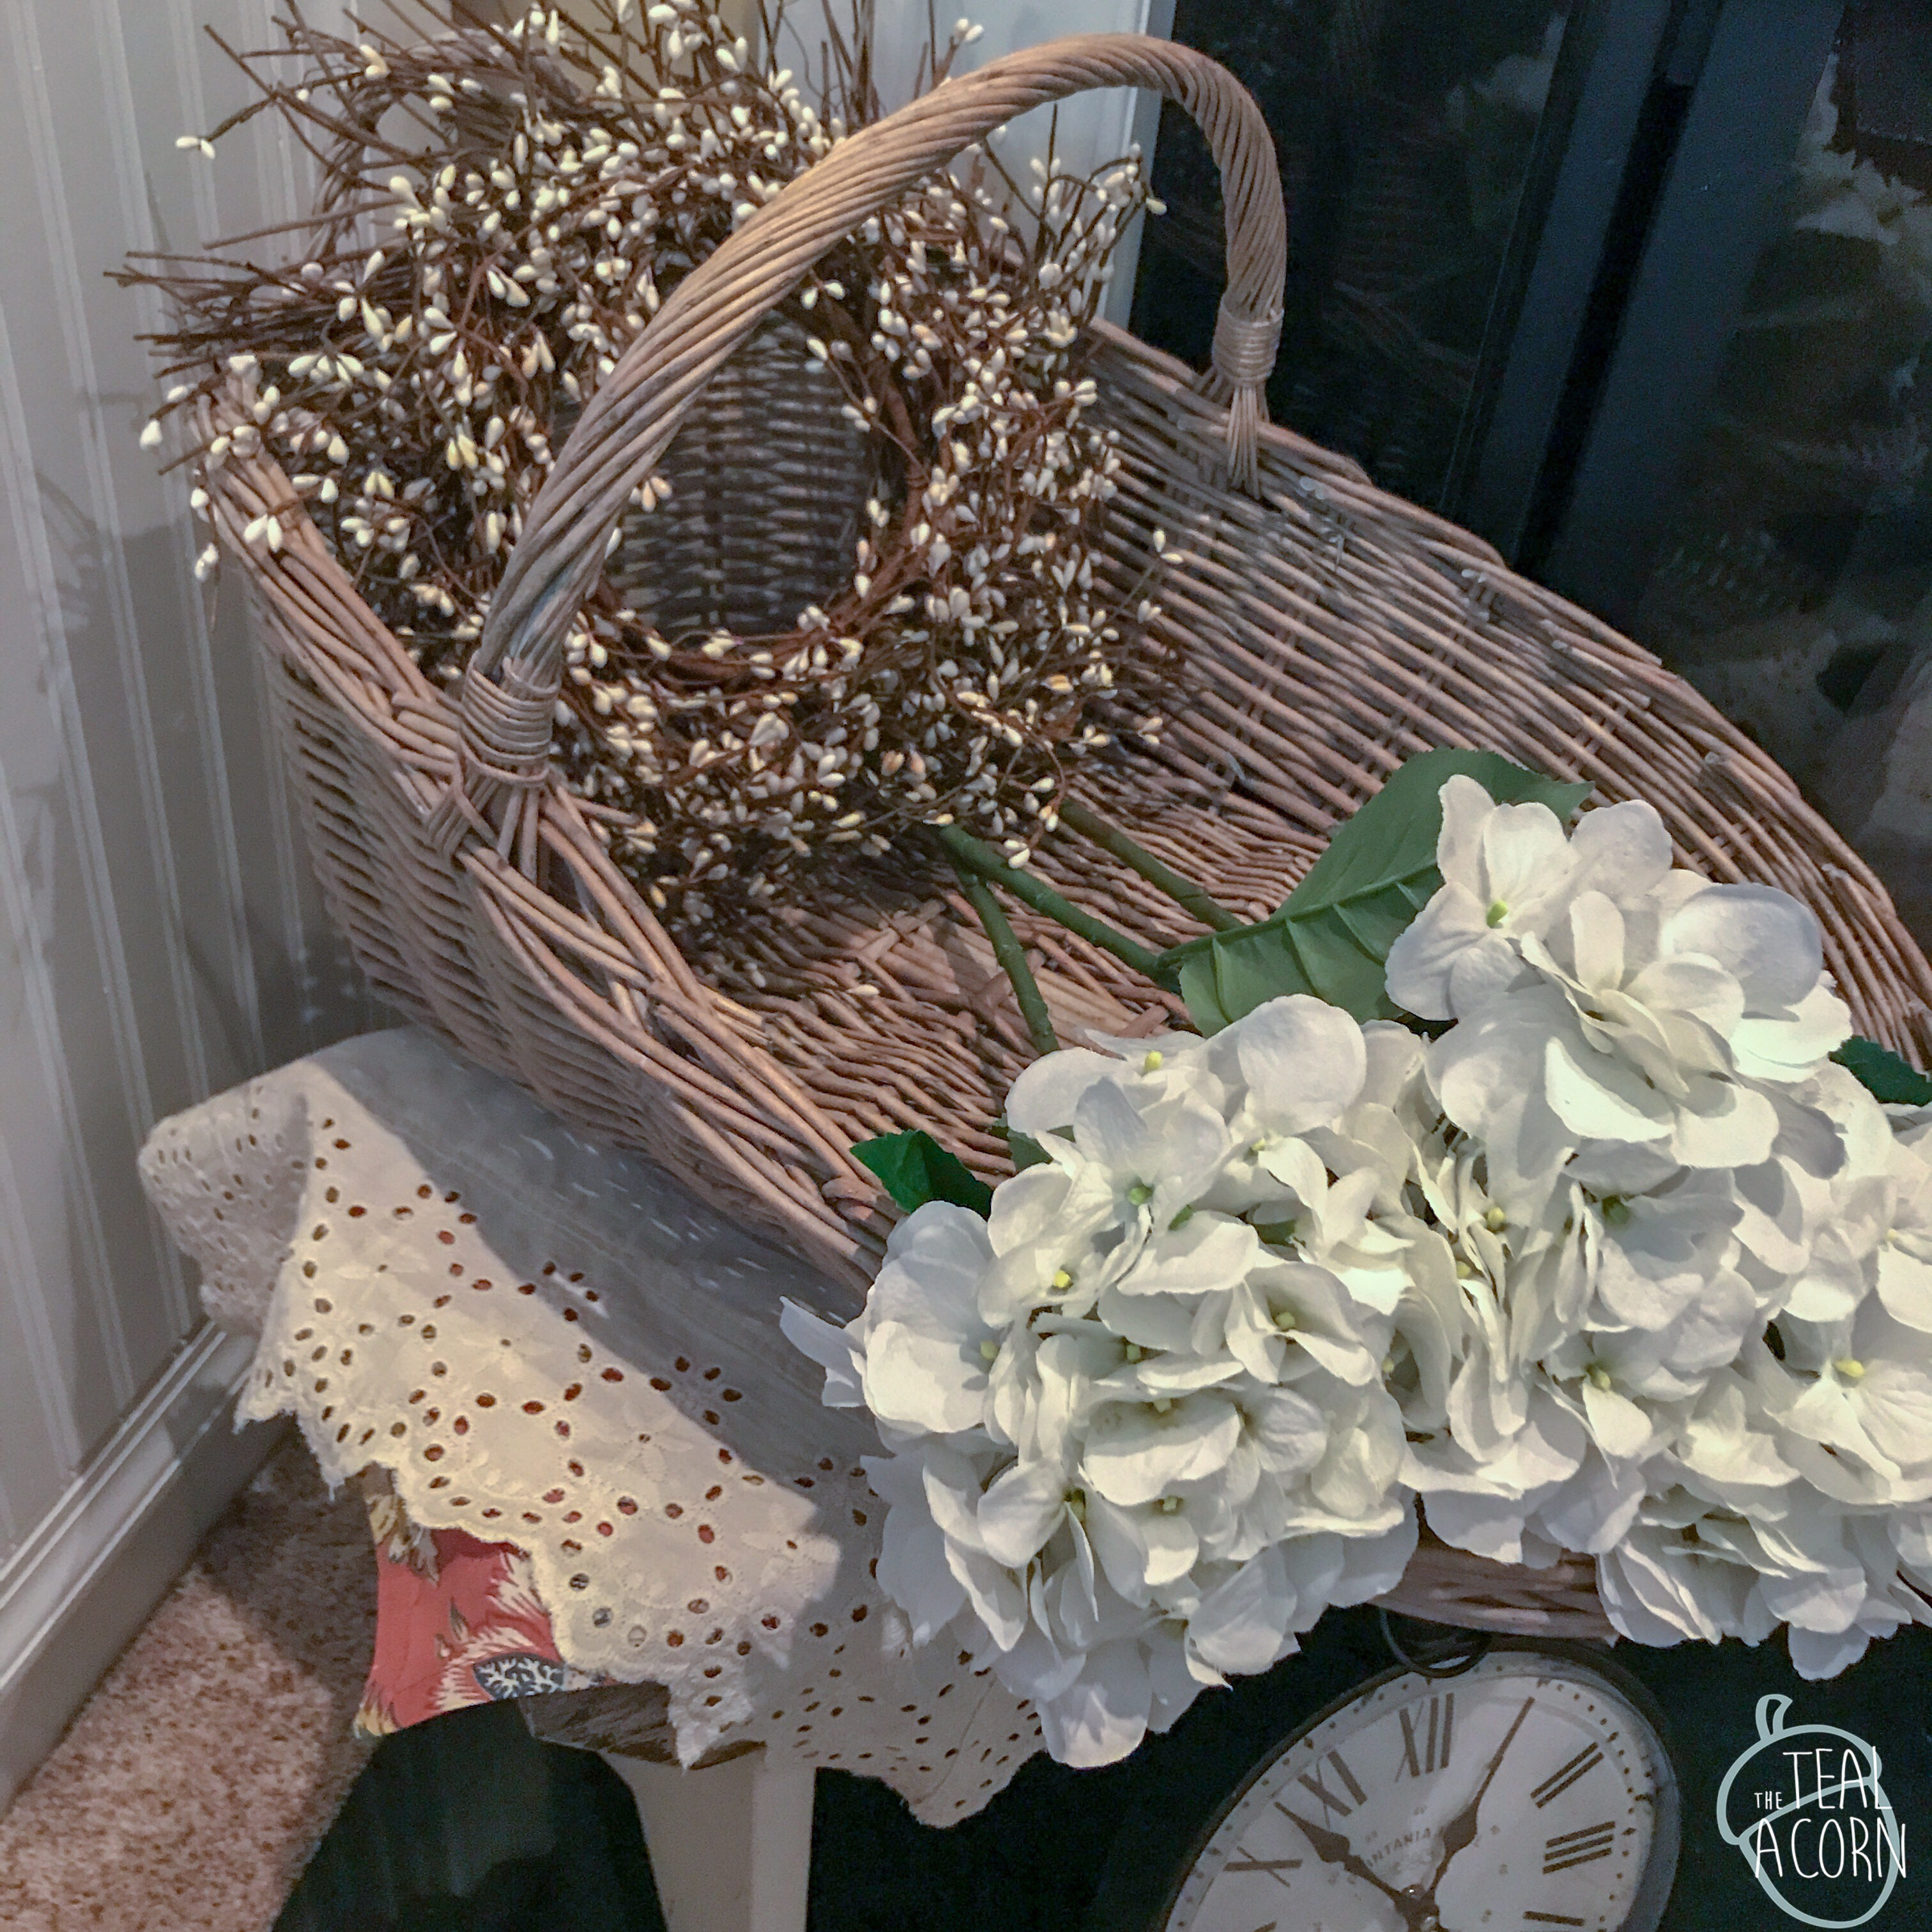 wicker gathering basket with white hydrangeas